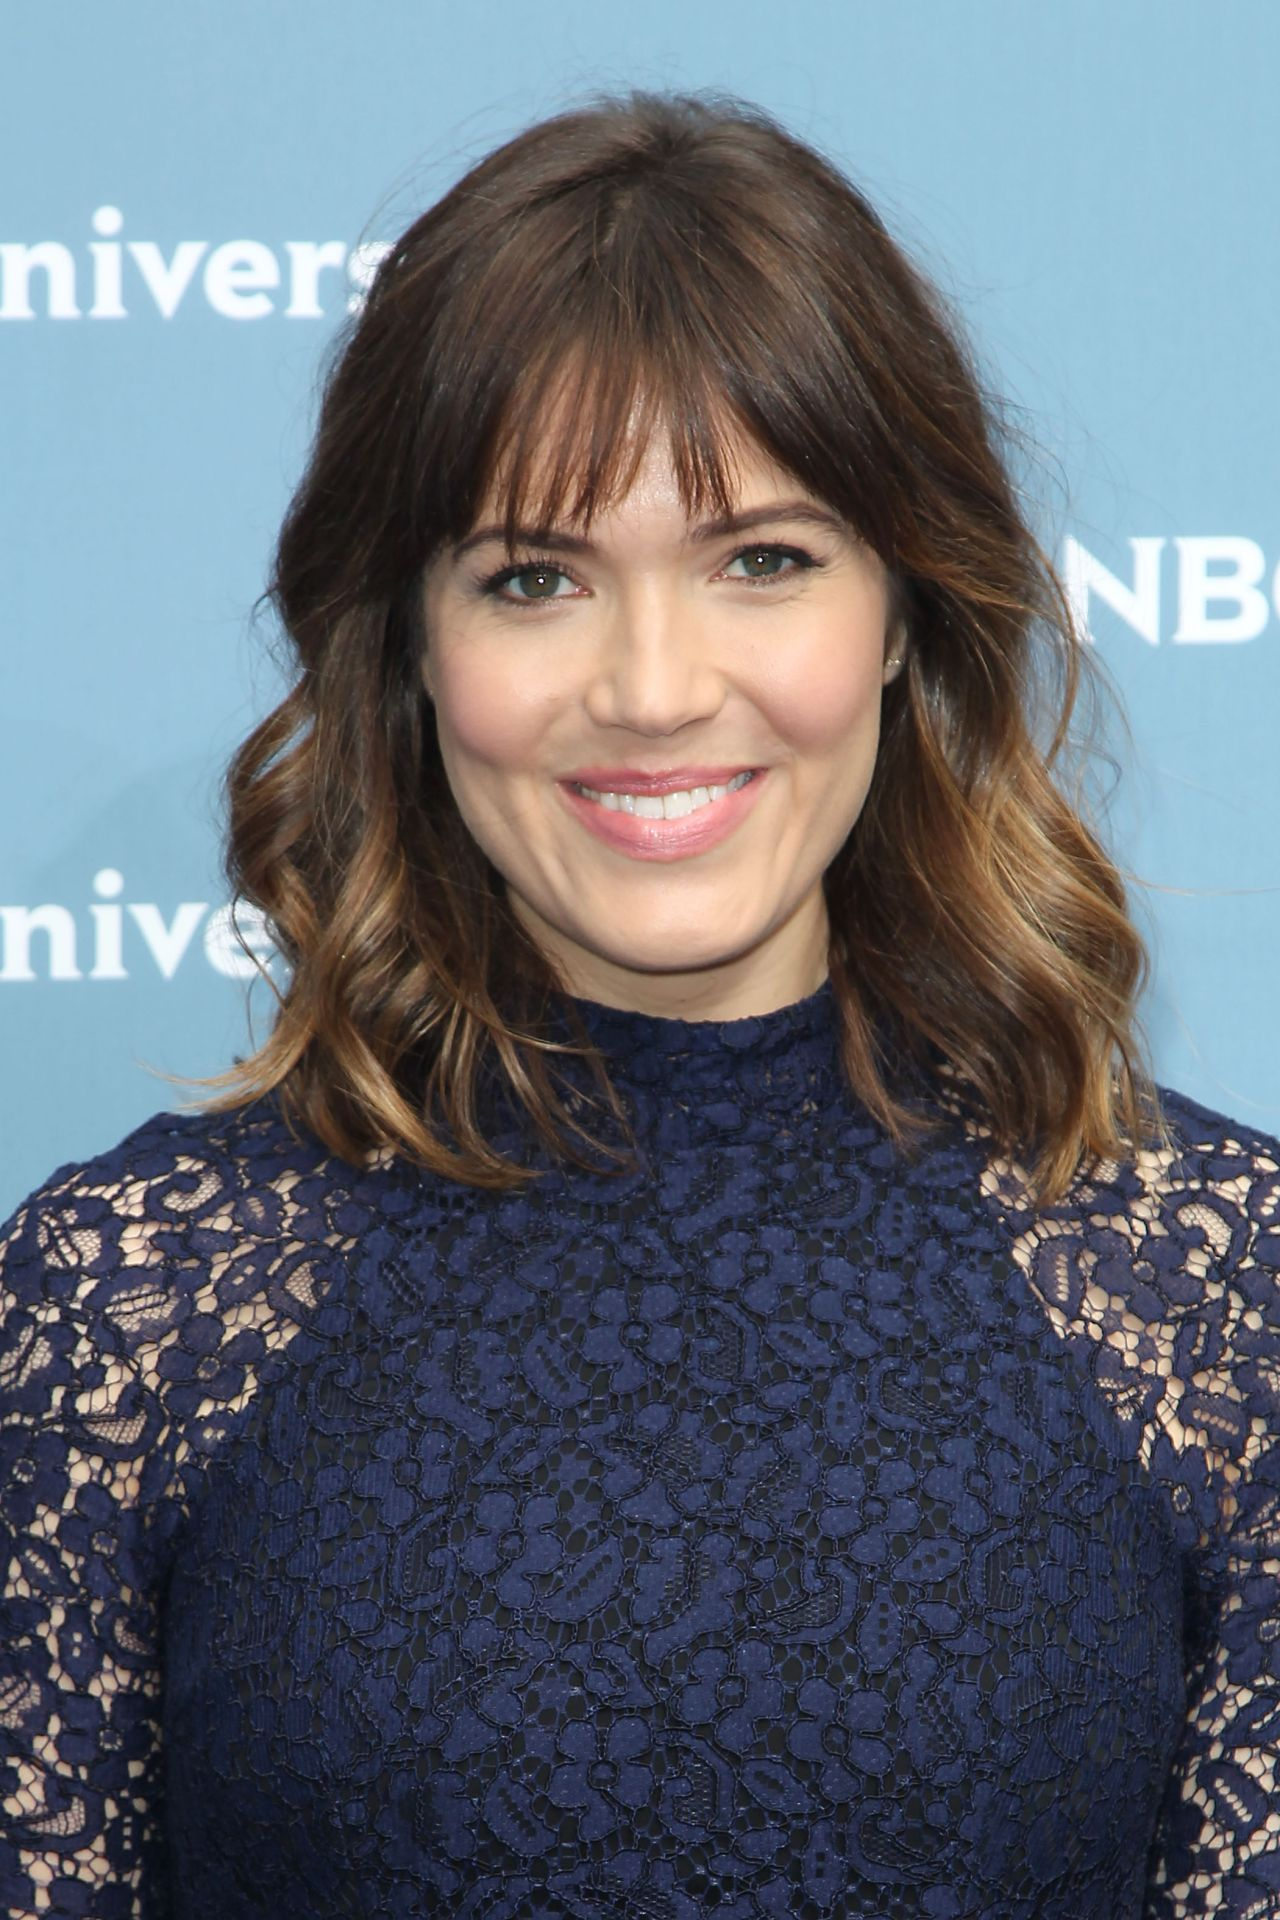 Mandy Moore Nbcuniversal Upfront Presentation In New